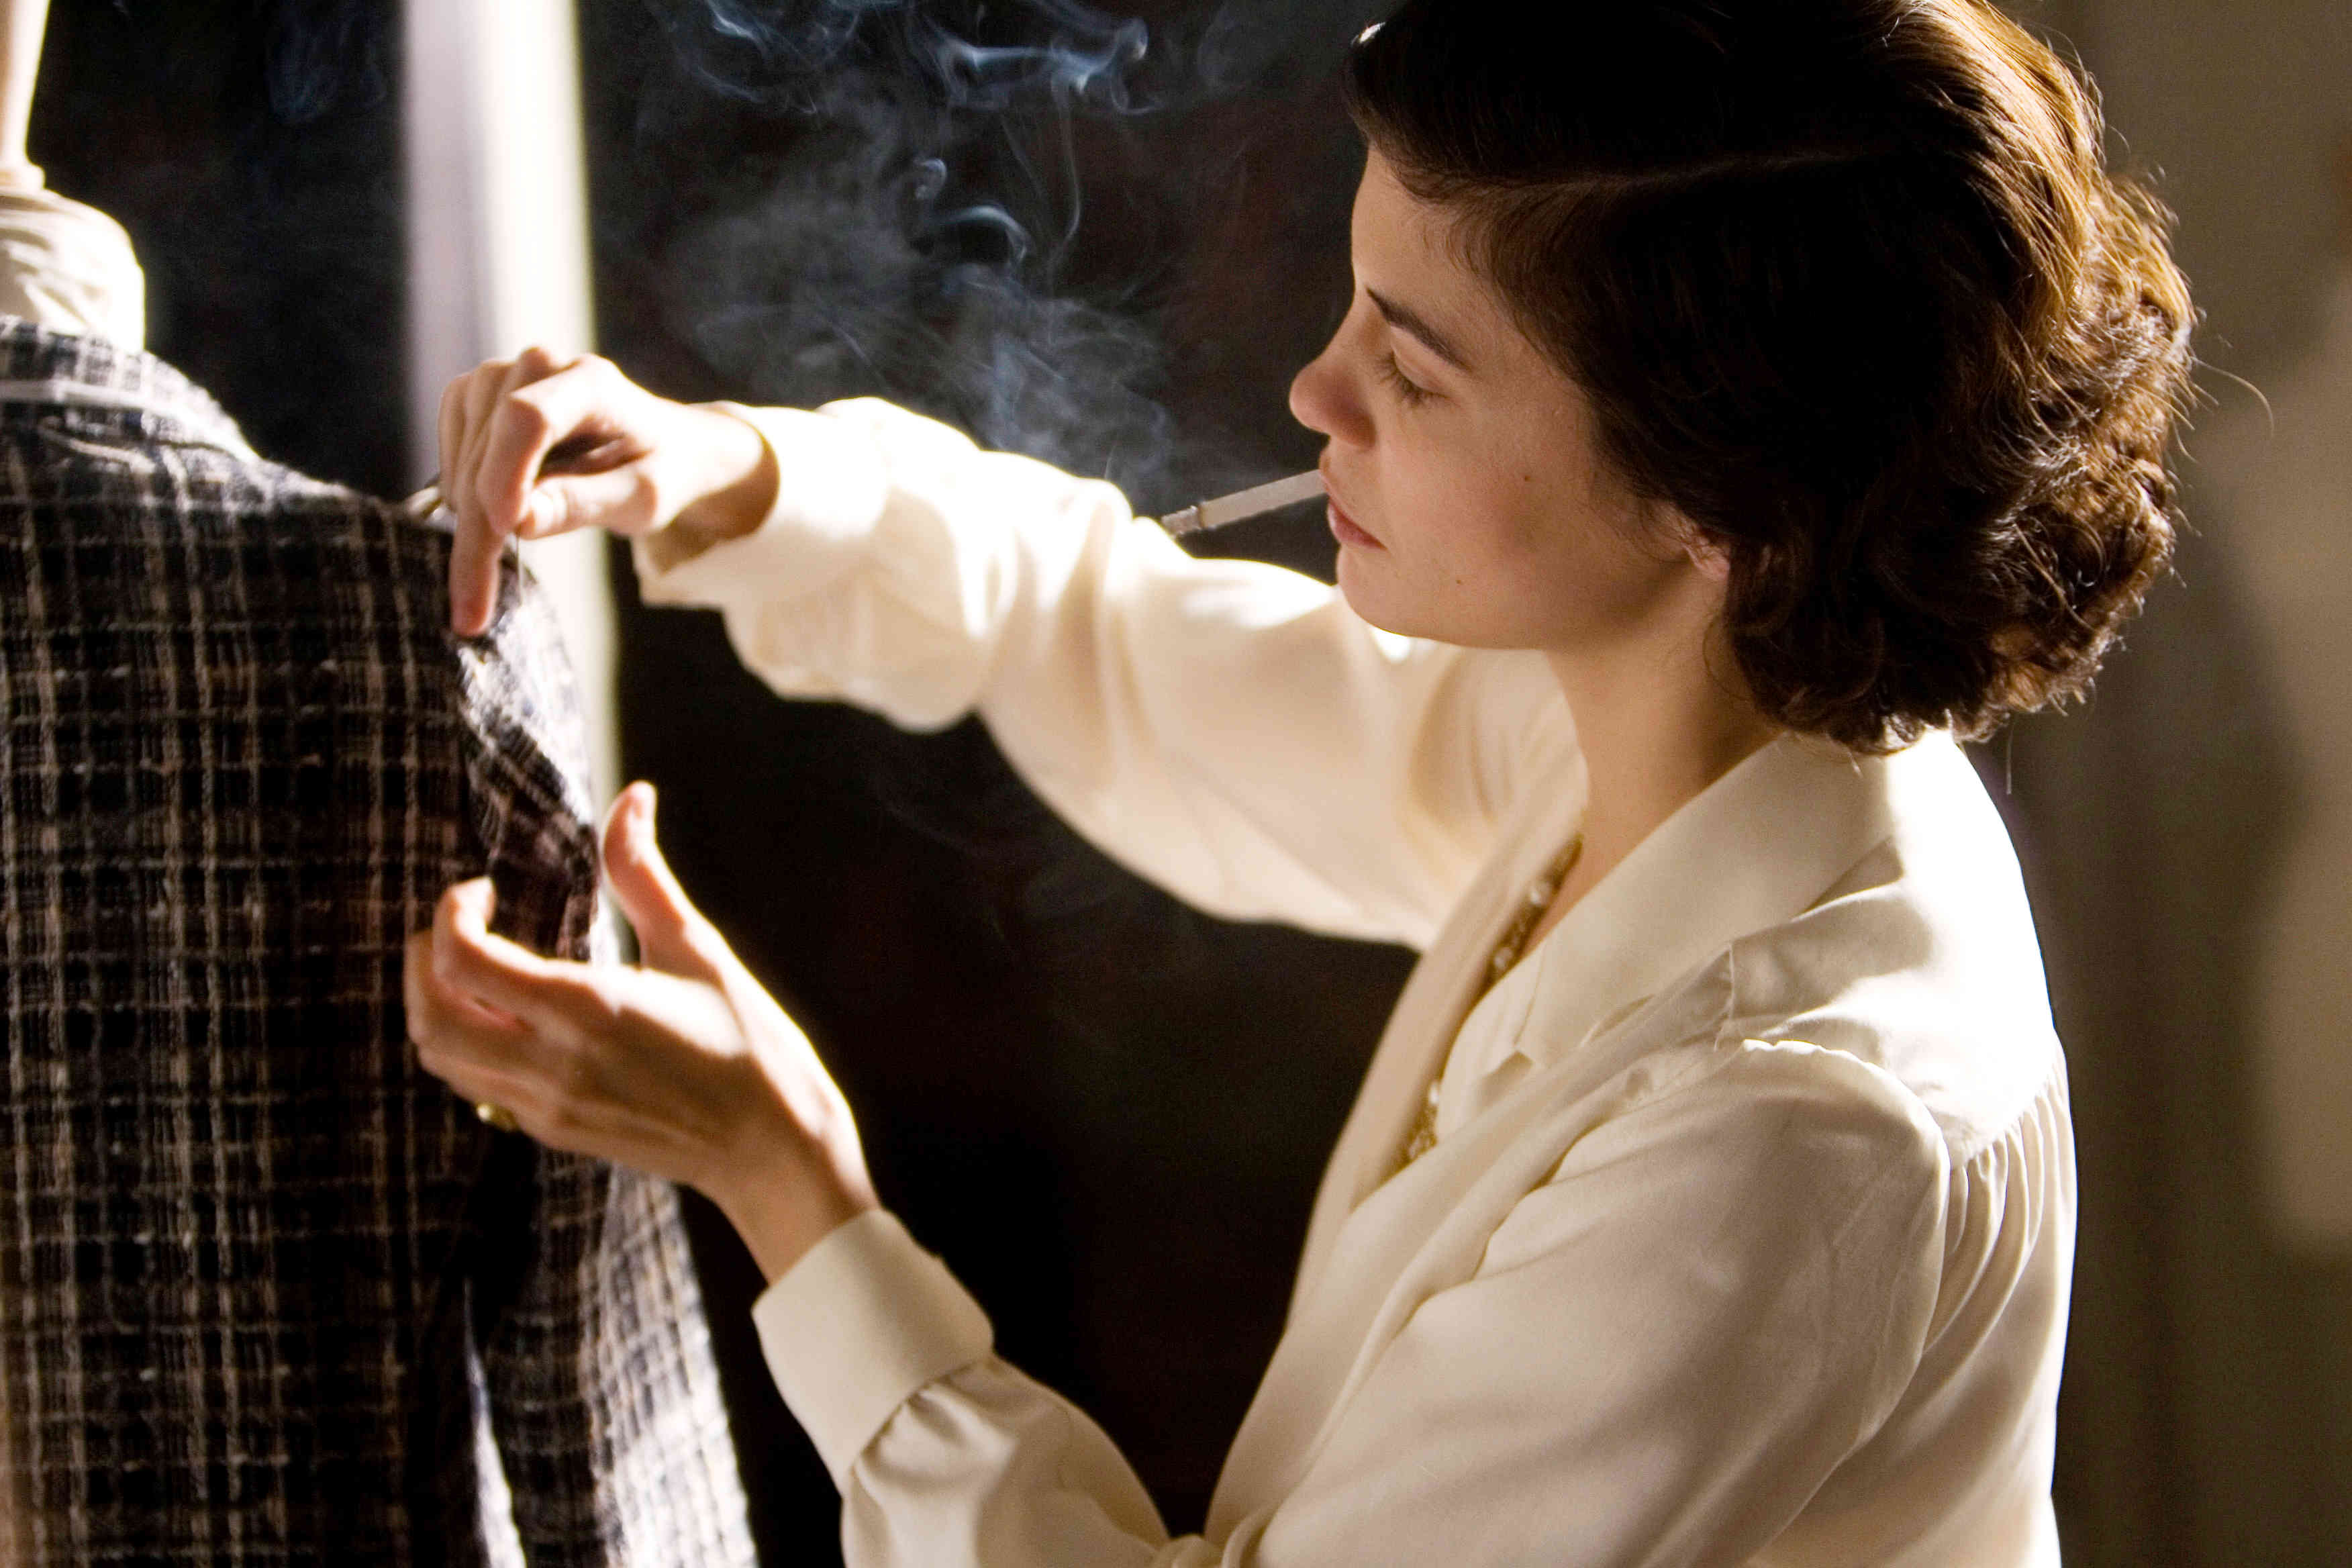 Audrey Tautou as Coco Chanel – Swing Fashionista